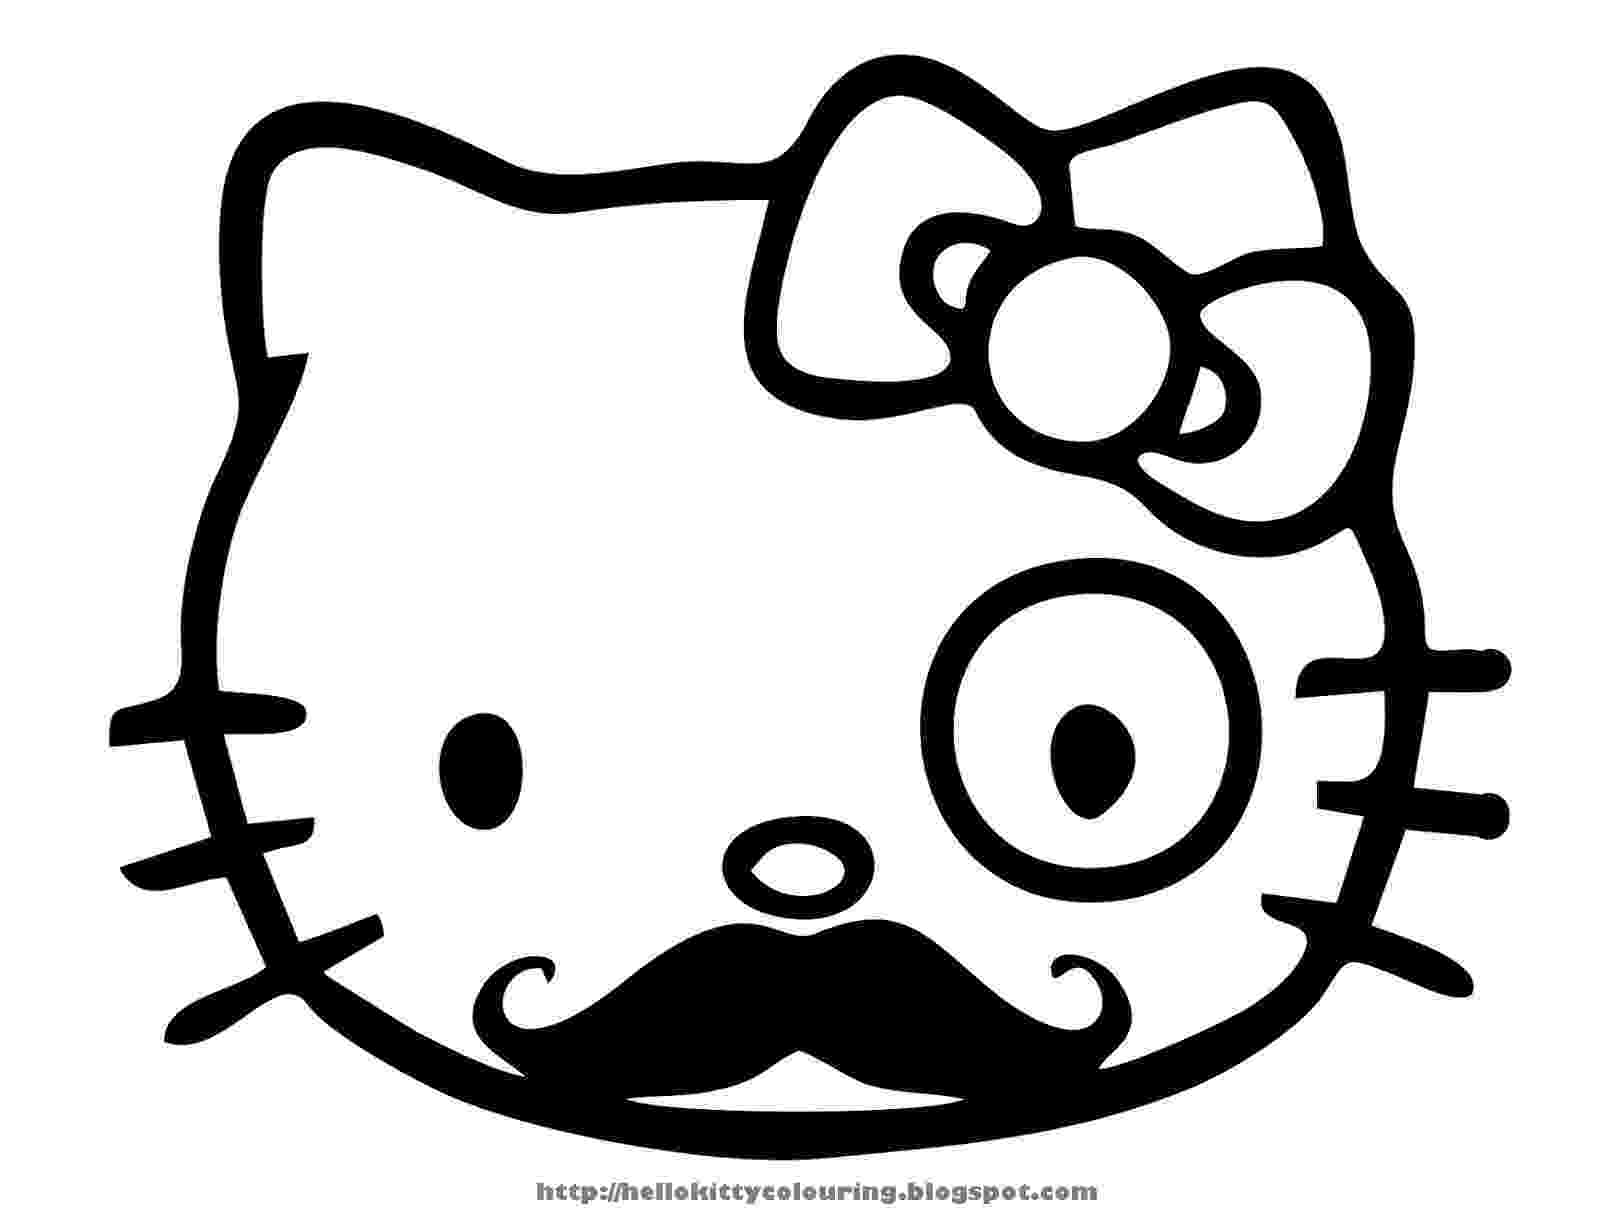 coloring book hello kitty large hello kitty coloring pages download and print for free book coloring hello kitty